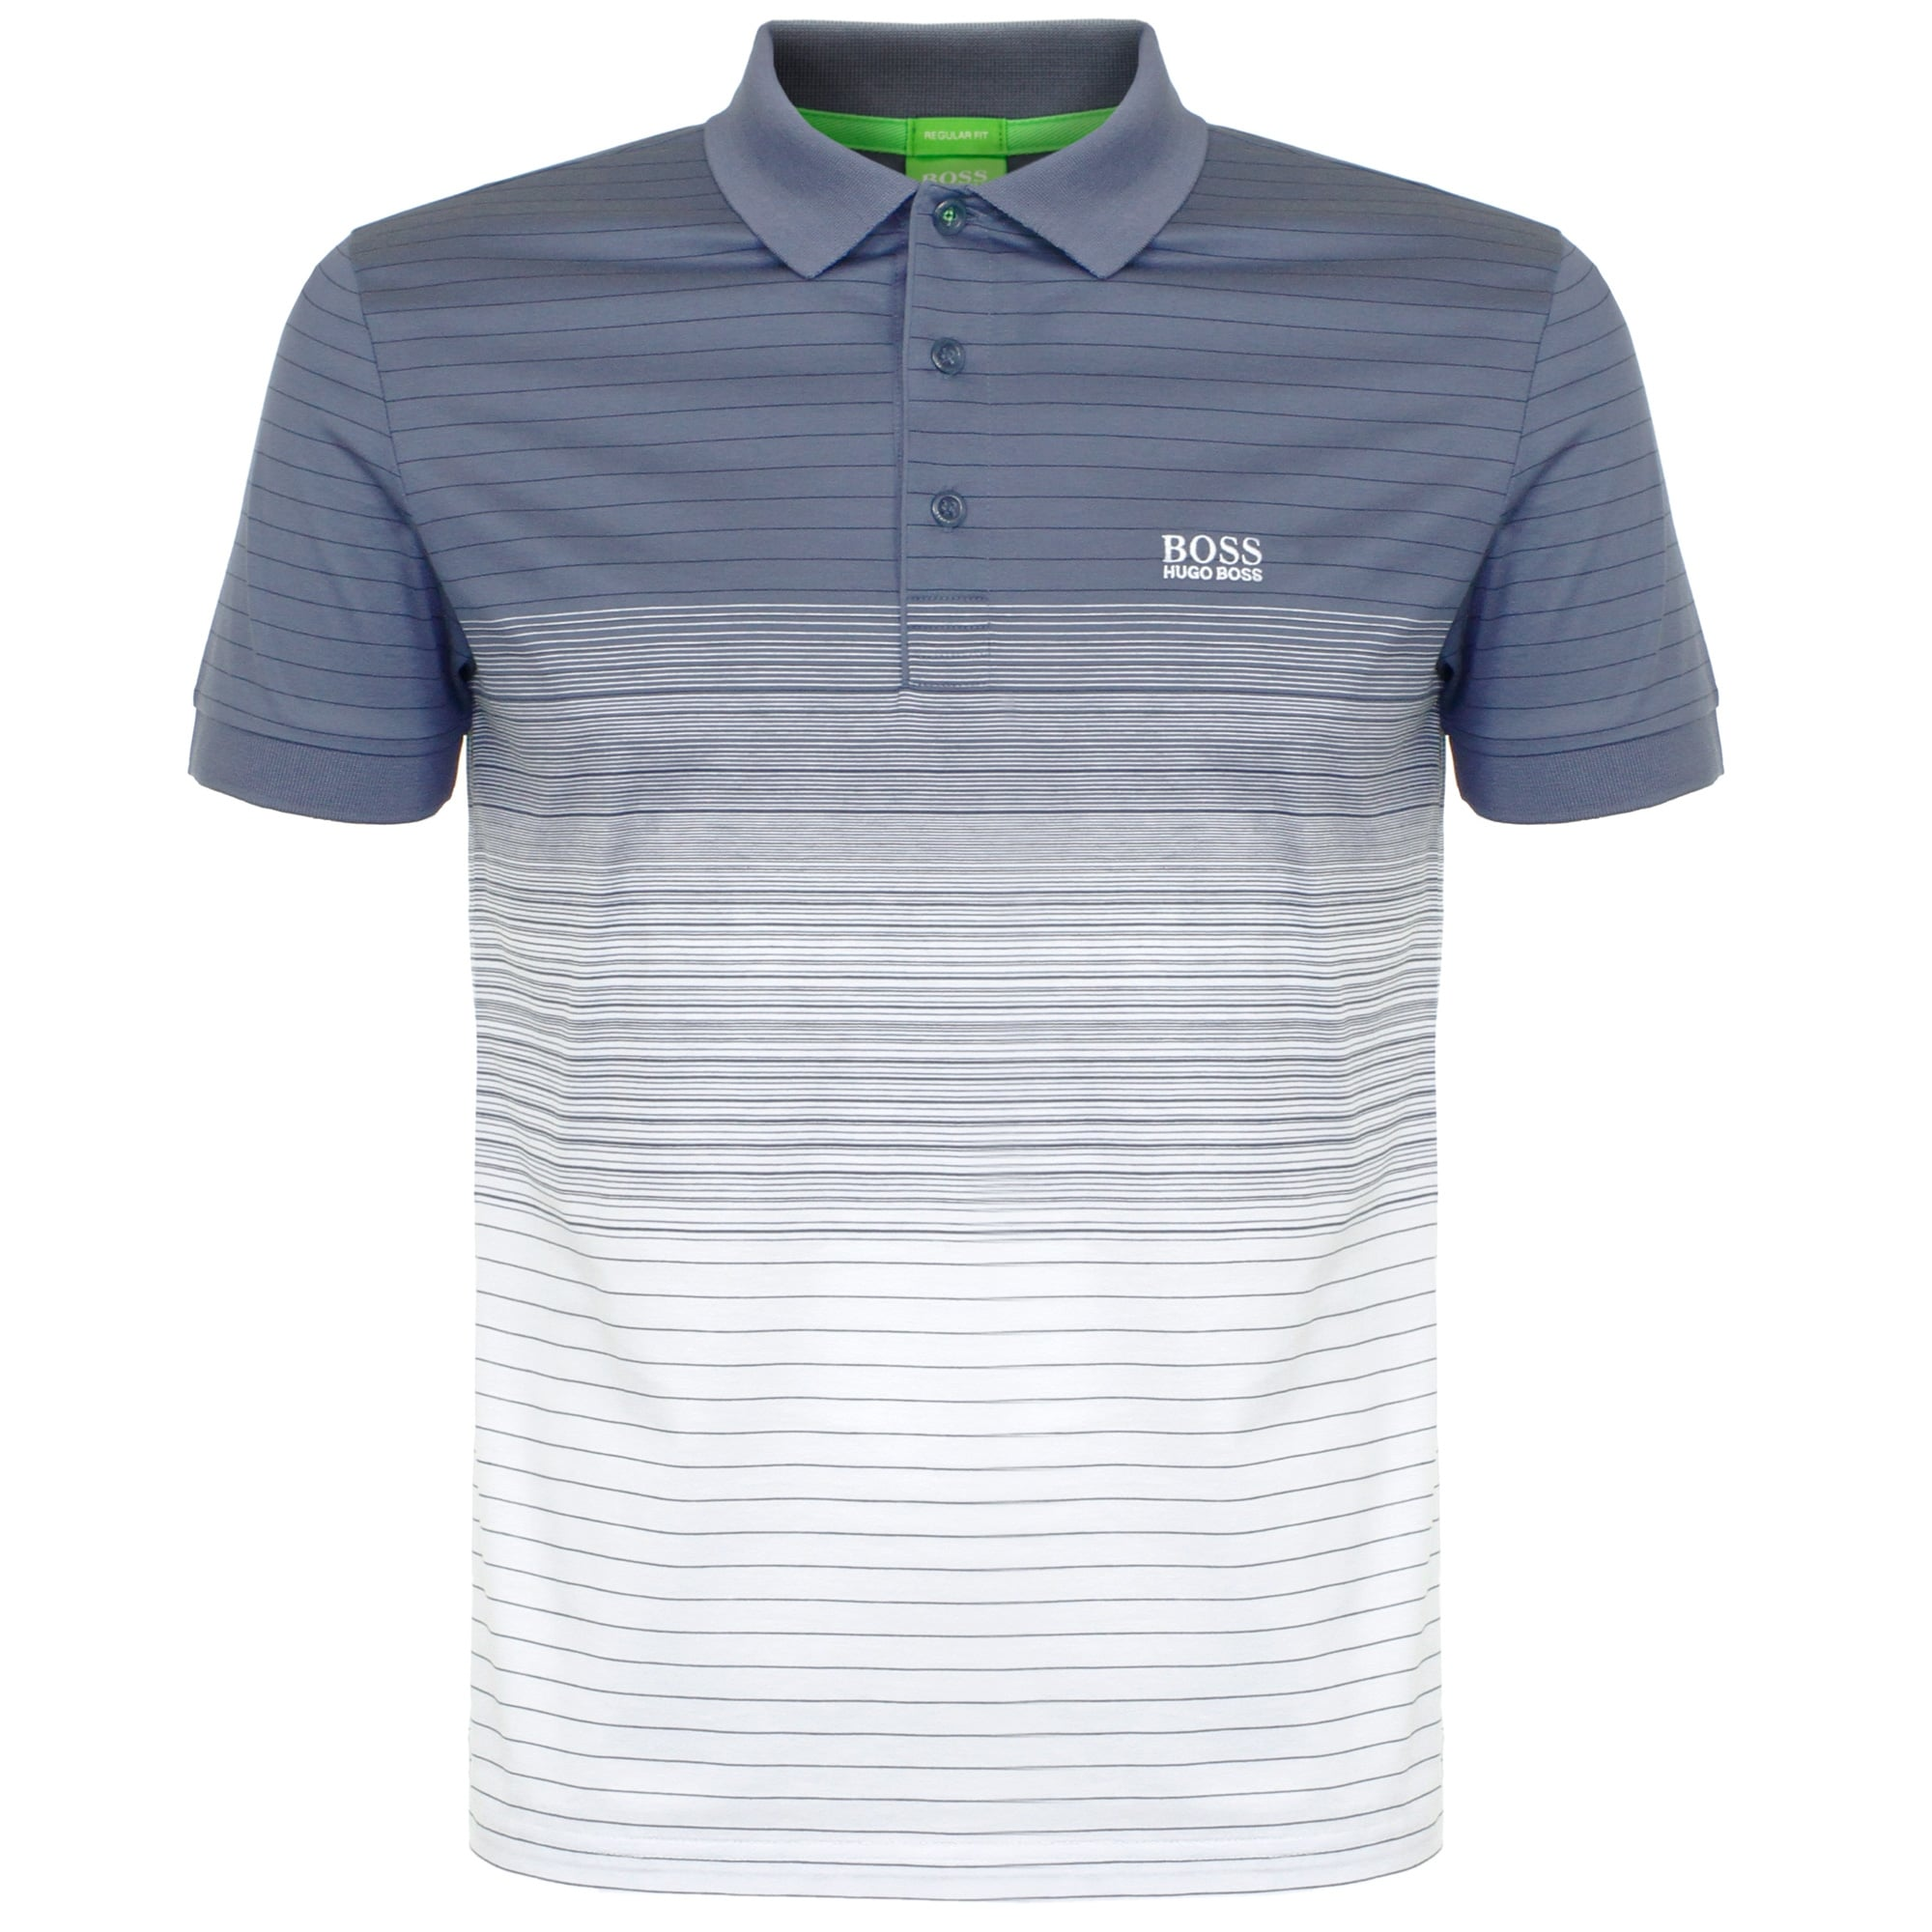 Hugo Boss Polo Shirts Clearance Canada Joe Maloy